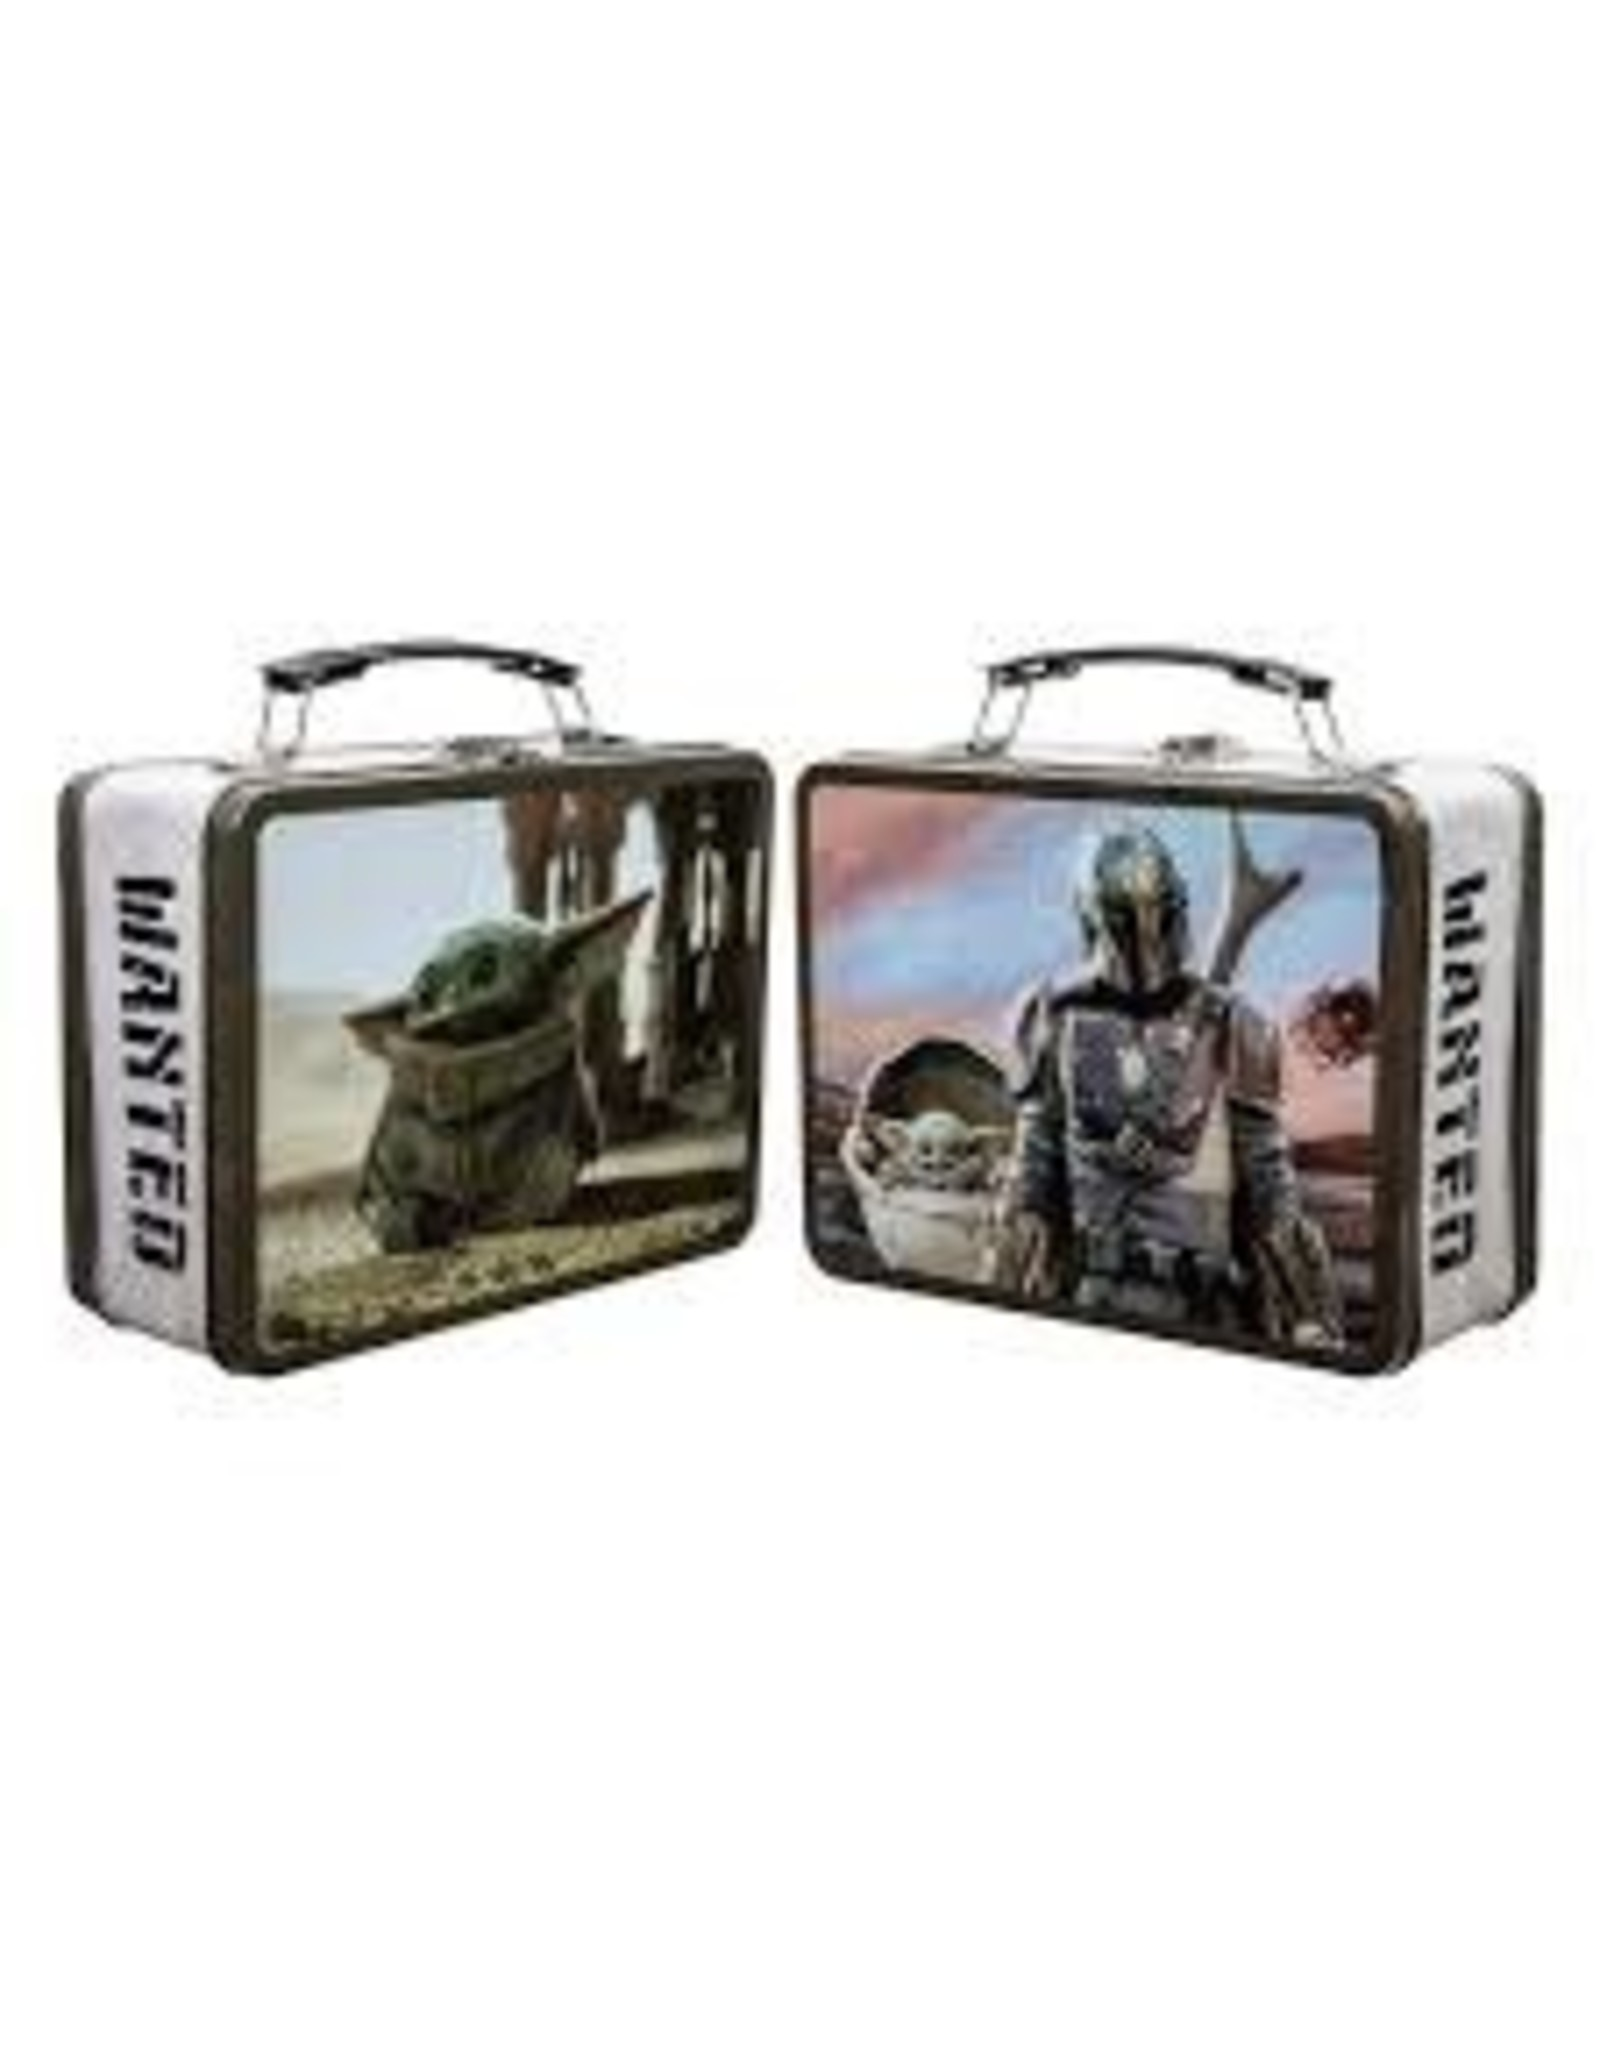 Lunch Box - The Mandalorian (Star Wars)